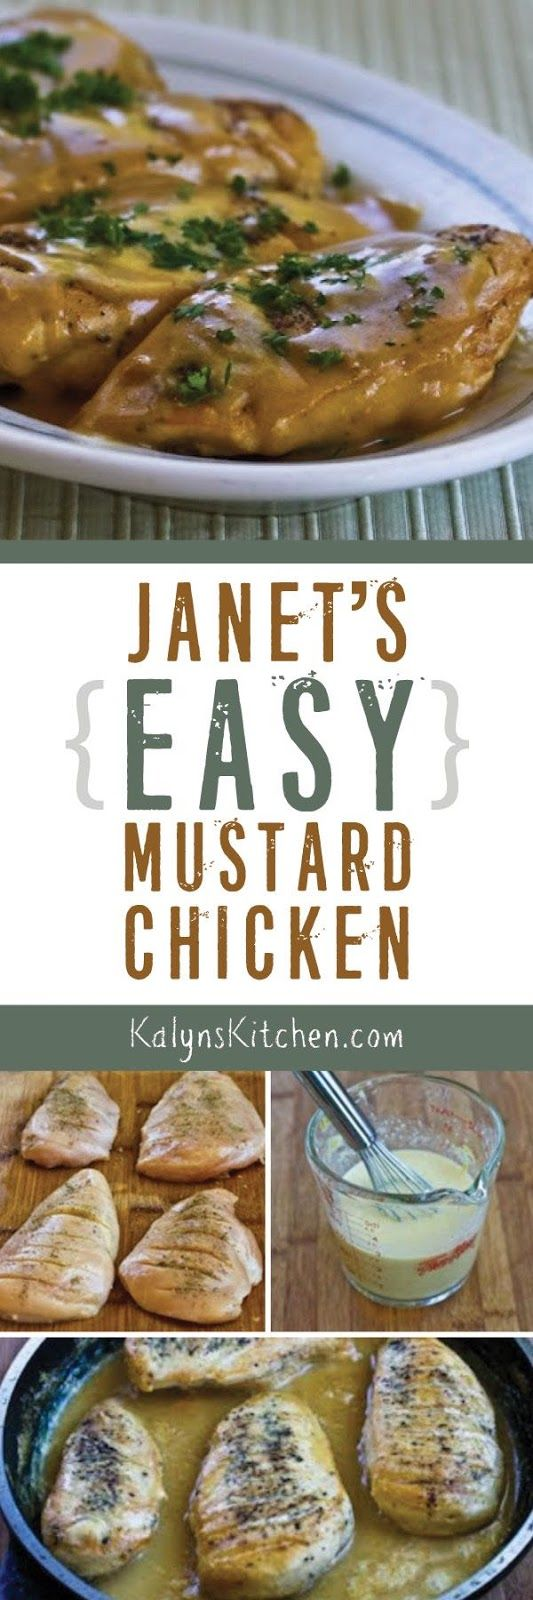 I got this recipe for Janet's Easy Mustard Chicken from my sister Janet, and this tasty quick and easy chicken dinner is low-carb, Keto, low-glycemic, gluten-free and South Beach Diet friendly! [found on KalynsKitchen.com]: